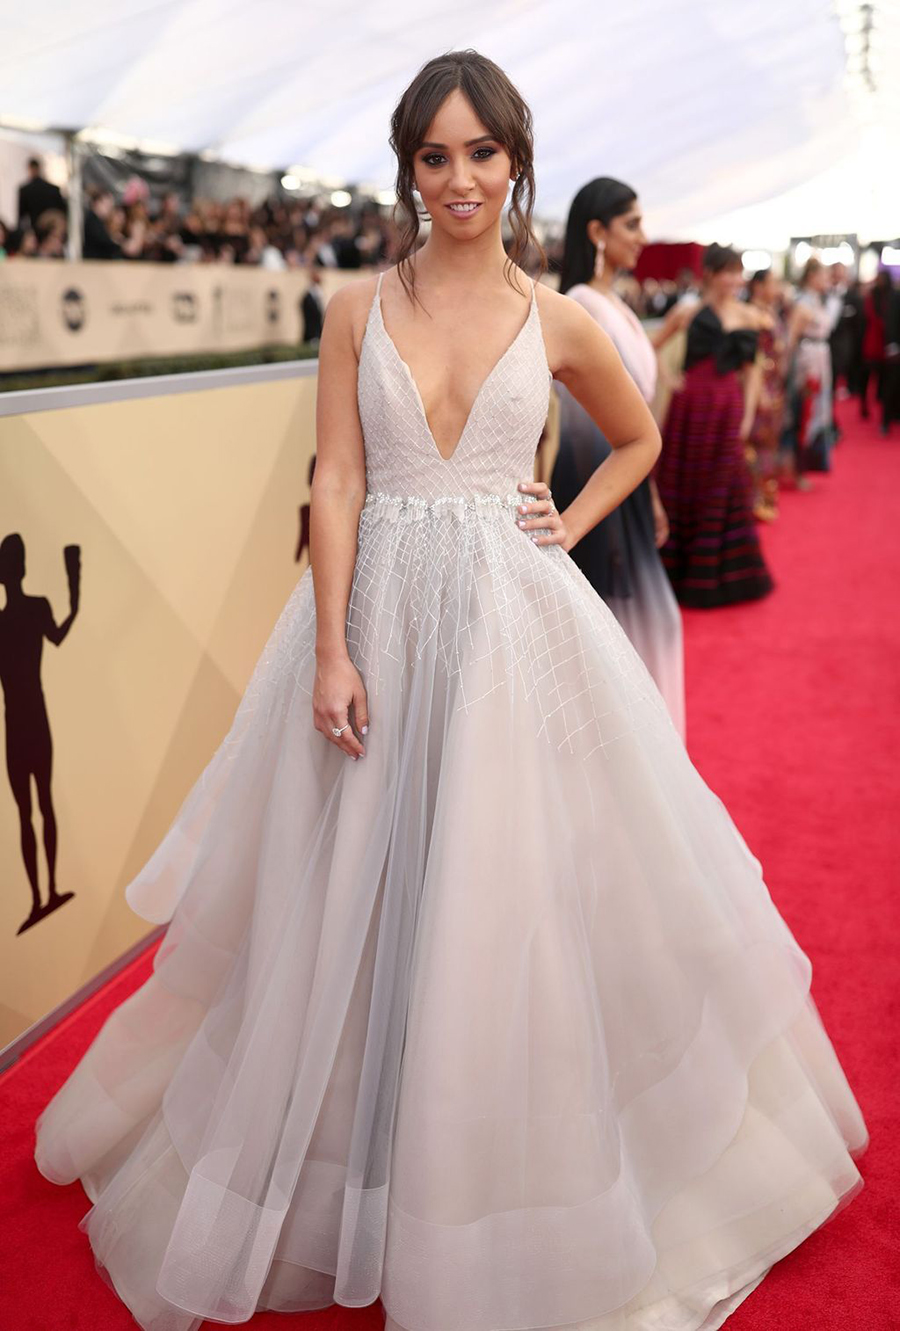 Britt Baron on the Red Carpet in a Hayley Paige Gown and Haute Bride TM Crystal Sash